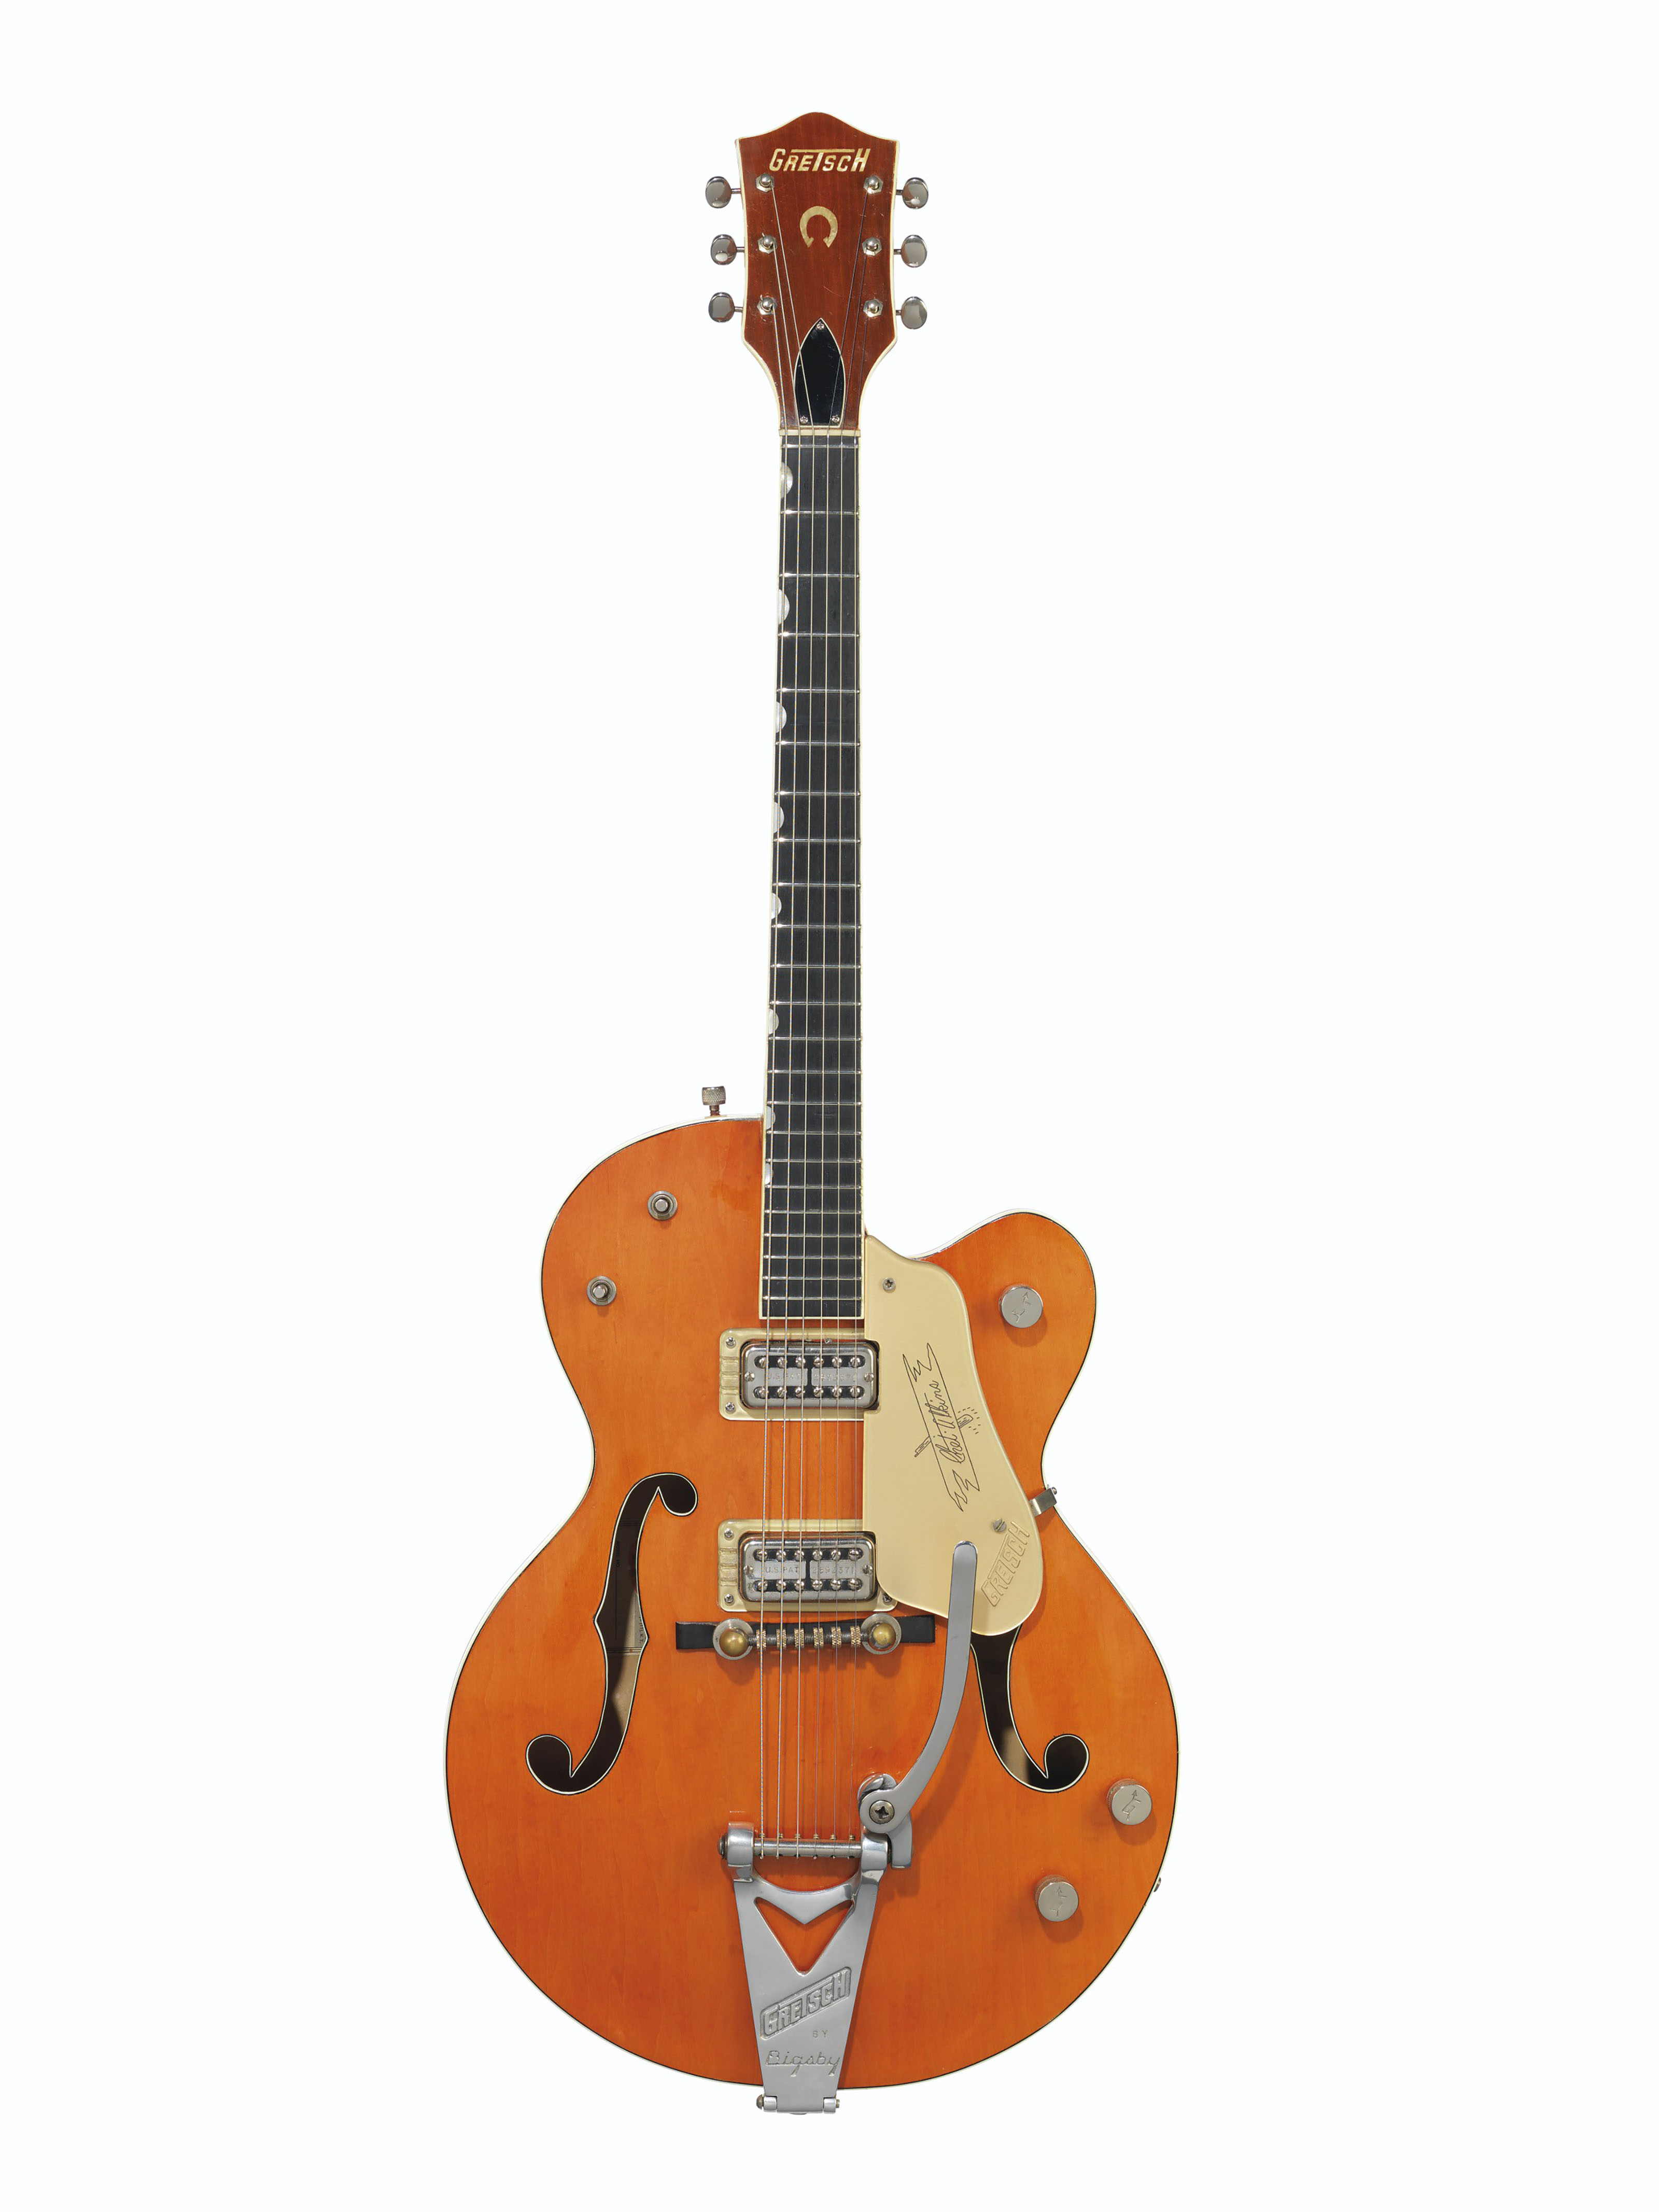 THE FRED GRETSCH MANUFACTURING COMPANY, BROOKLYN, 1960/61